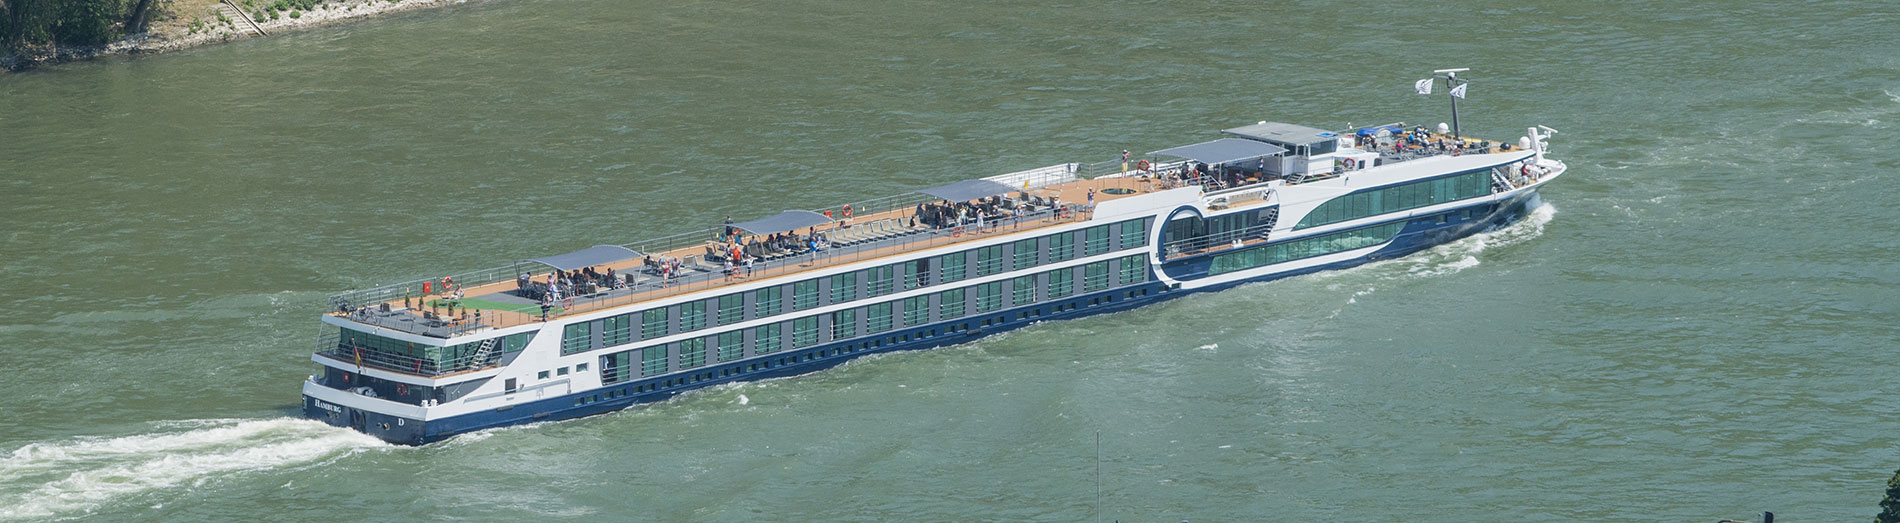 Avalon Passion- River Cruise Ship